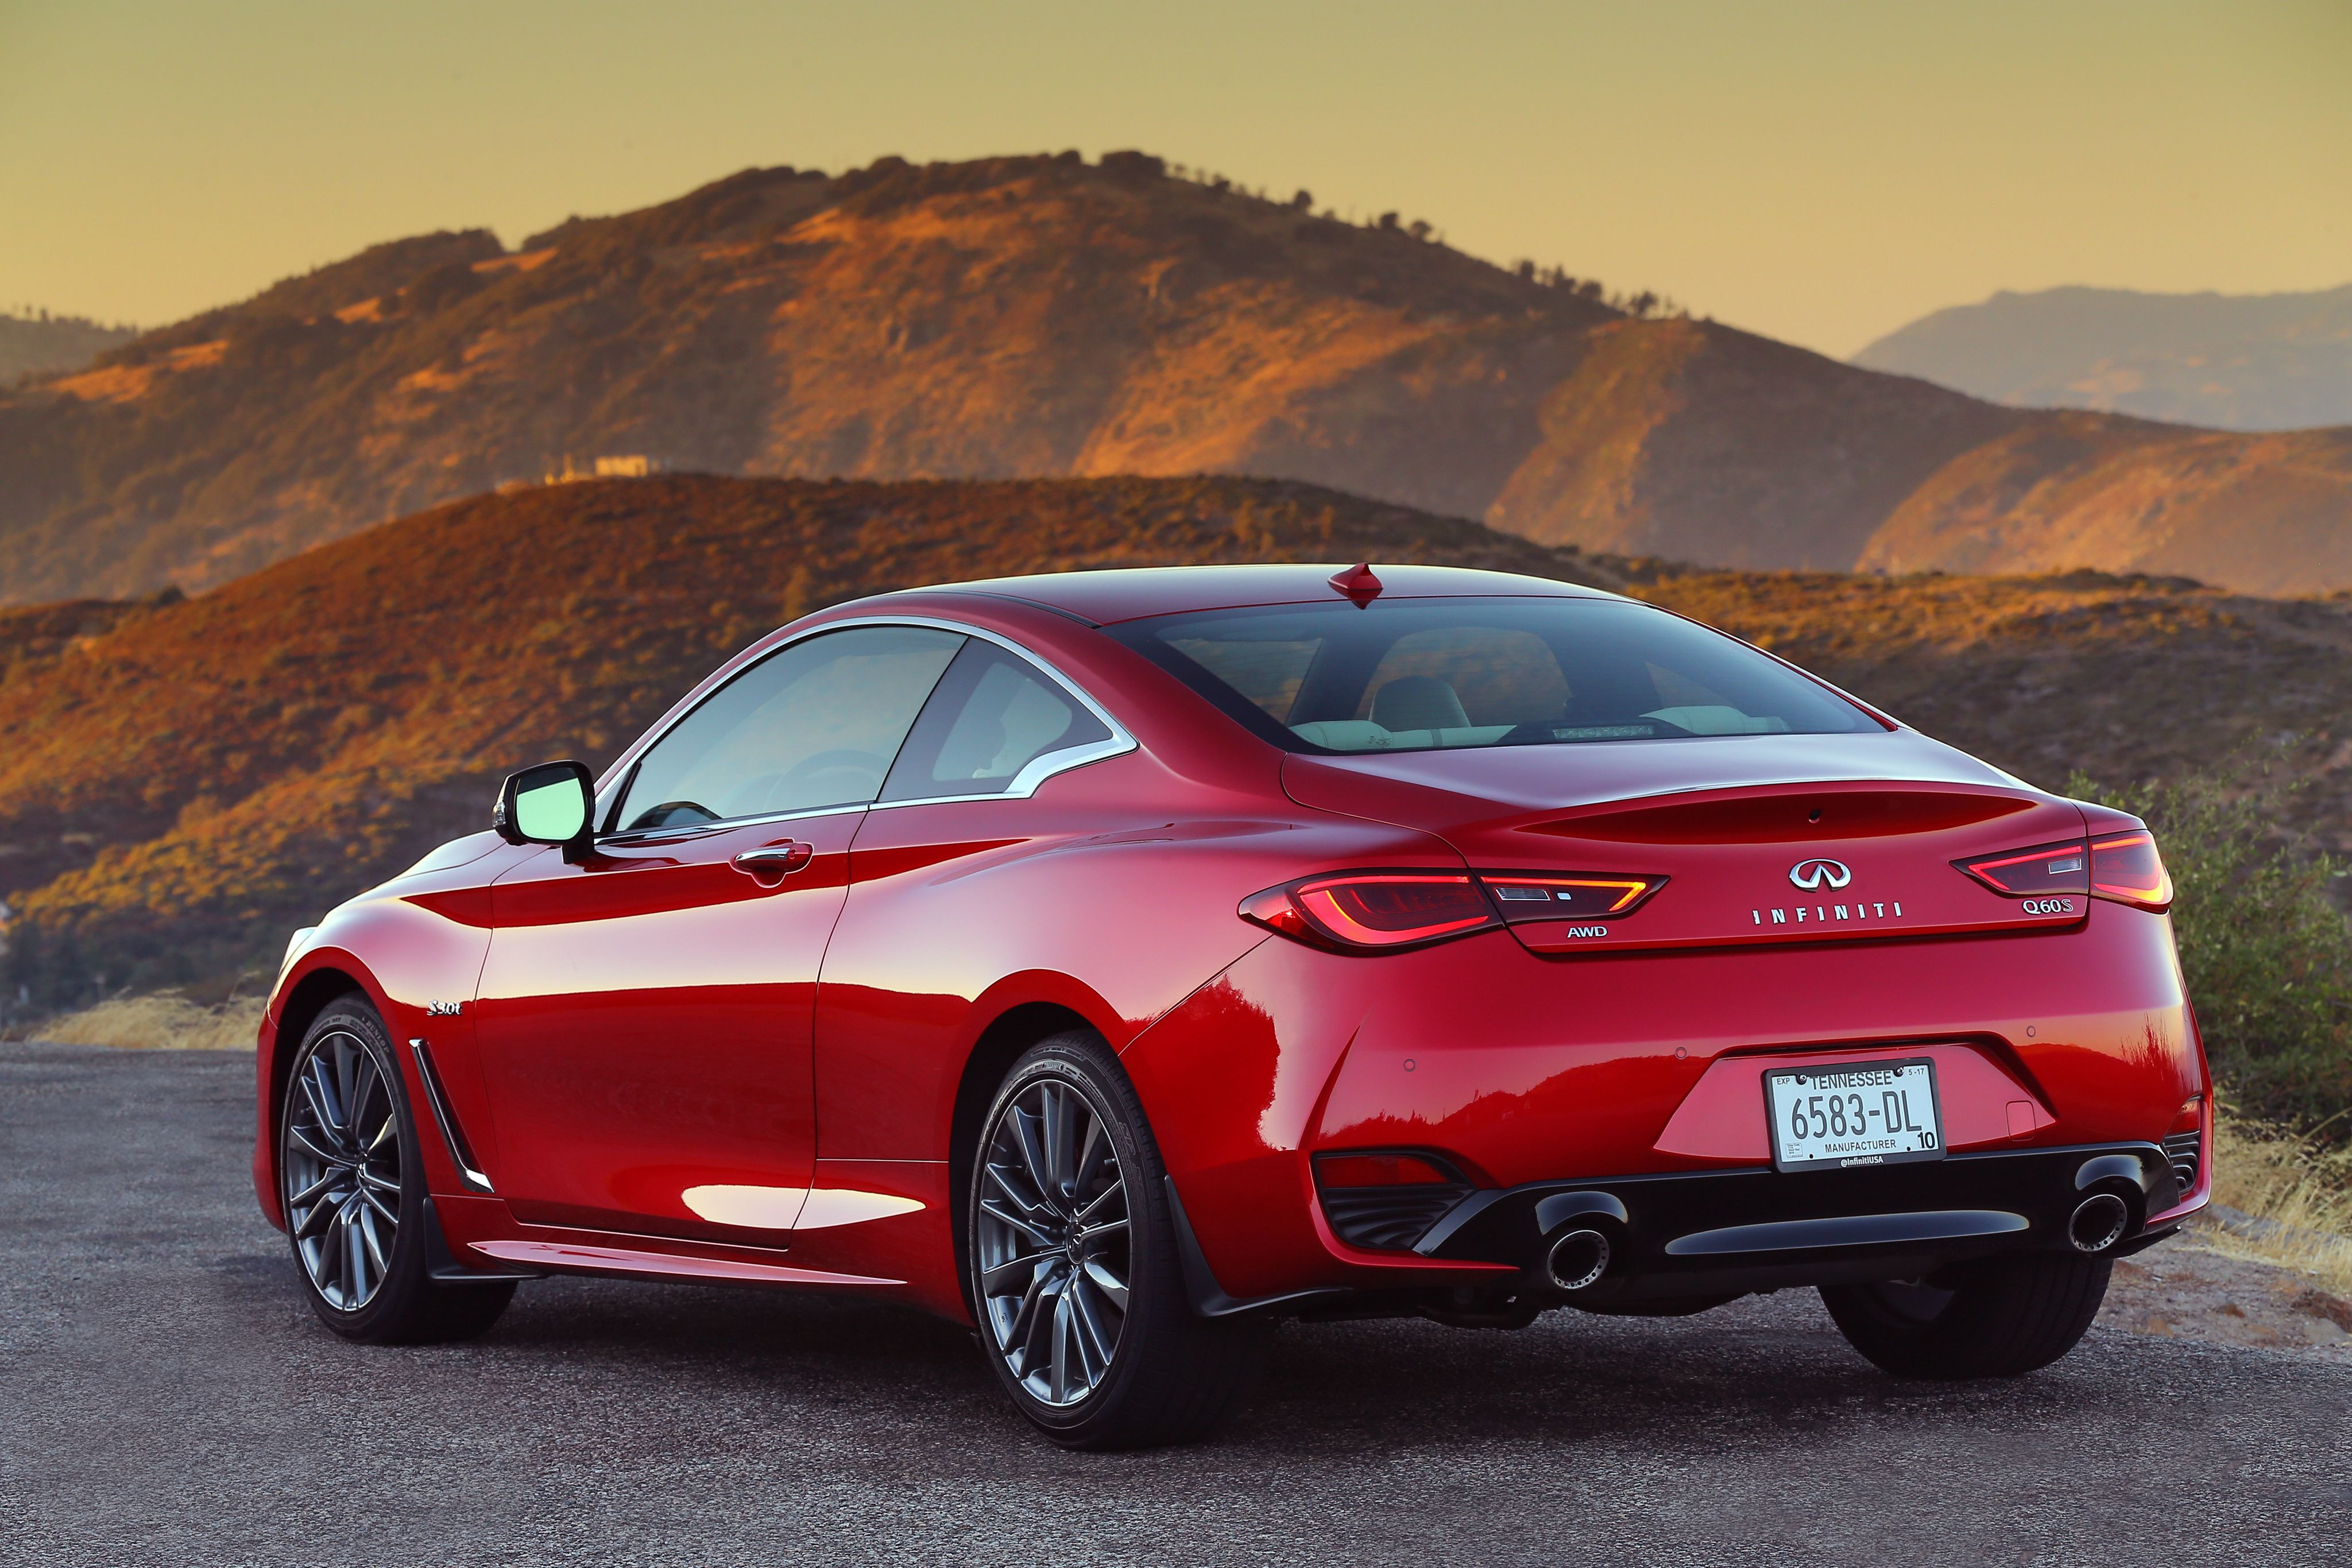 2017 Infiniti Q60 Red Sport 400 AWD (With Images)